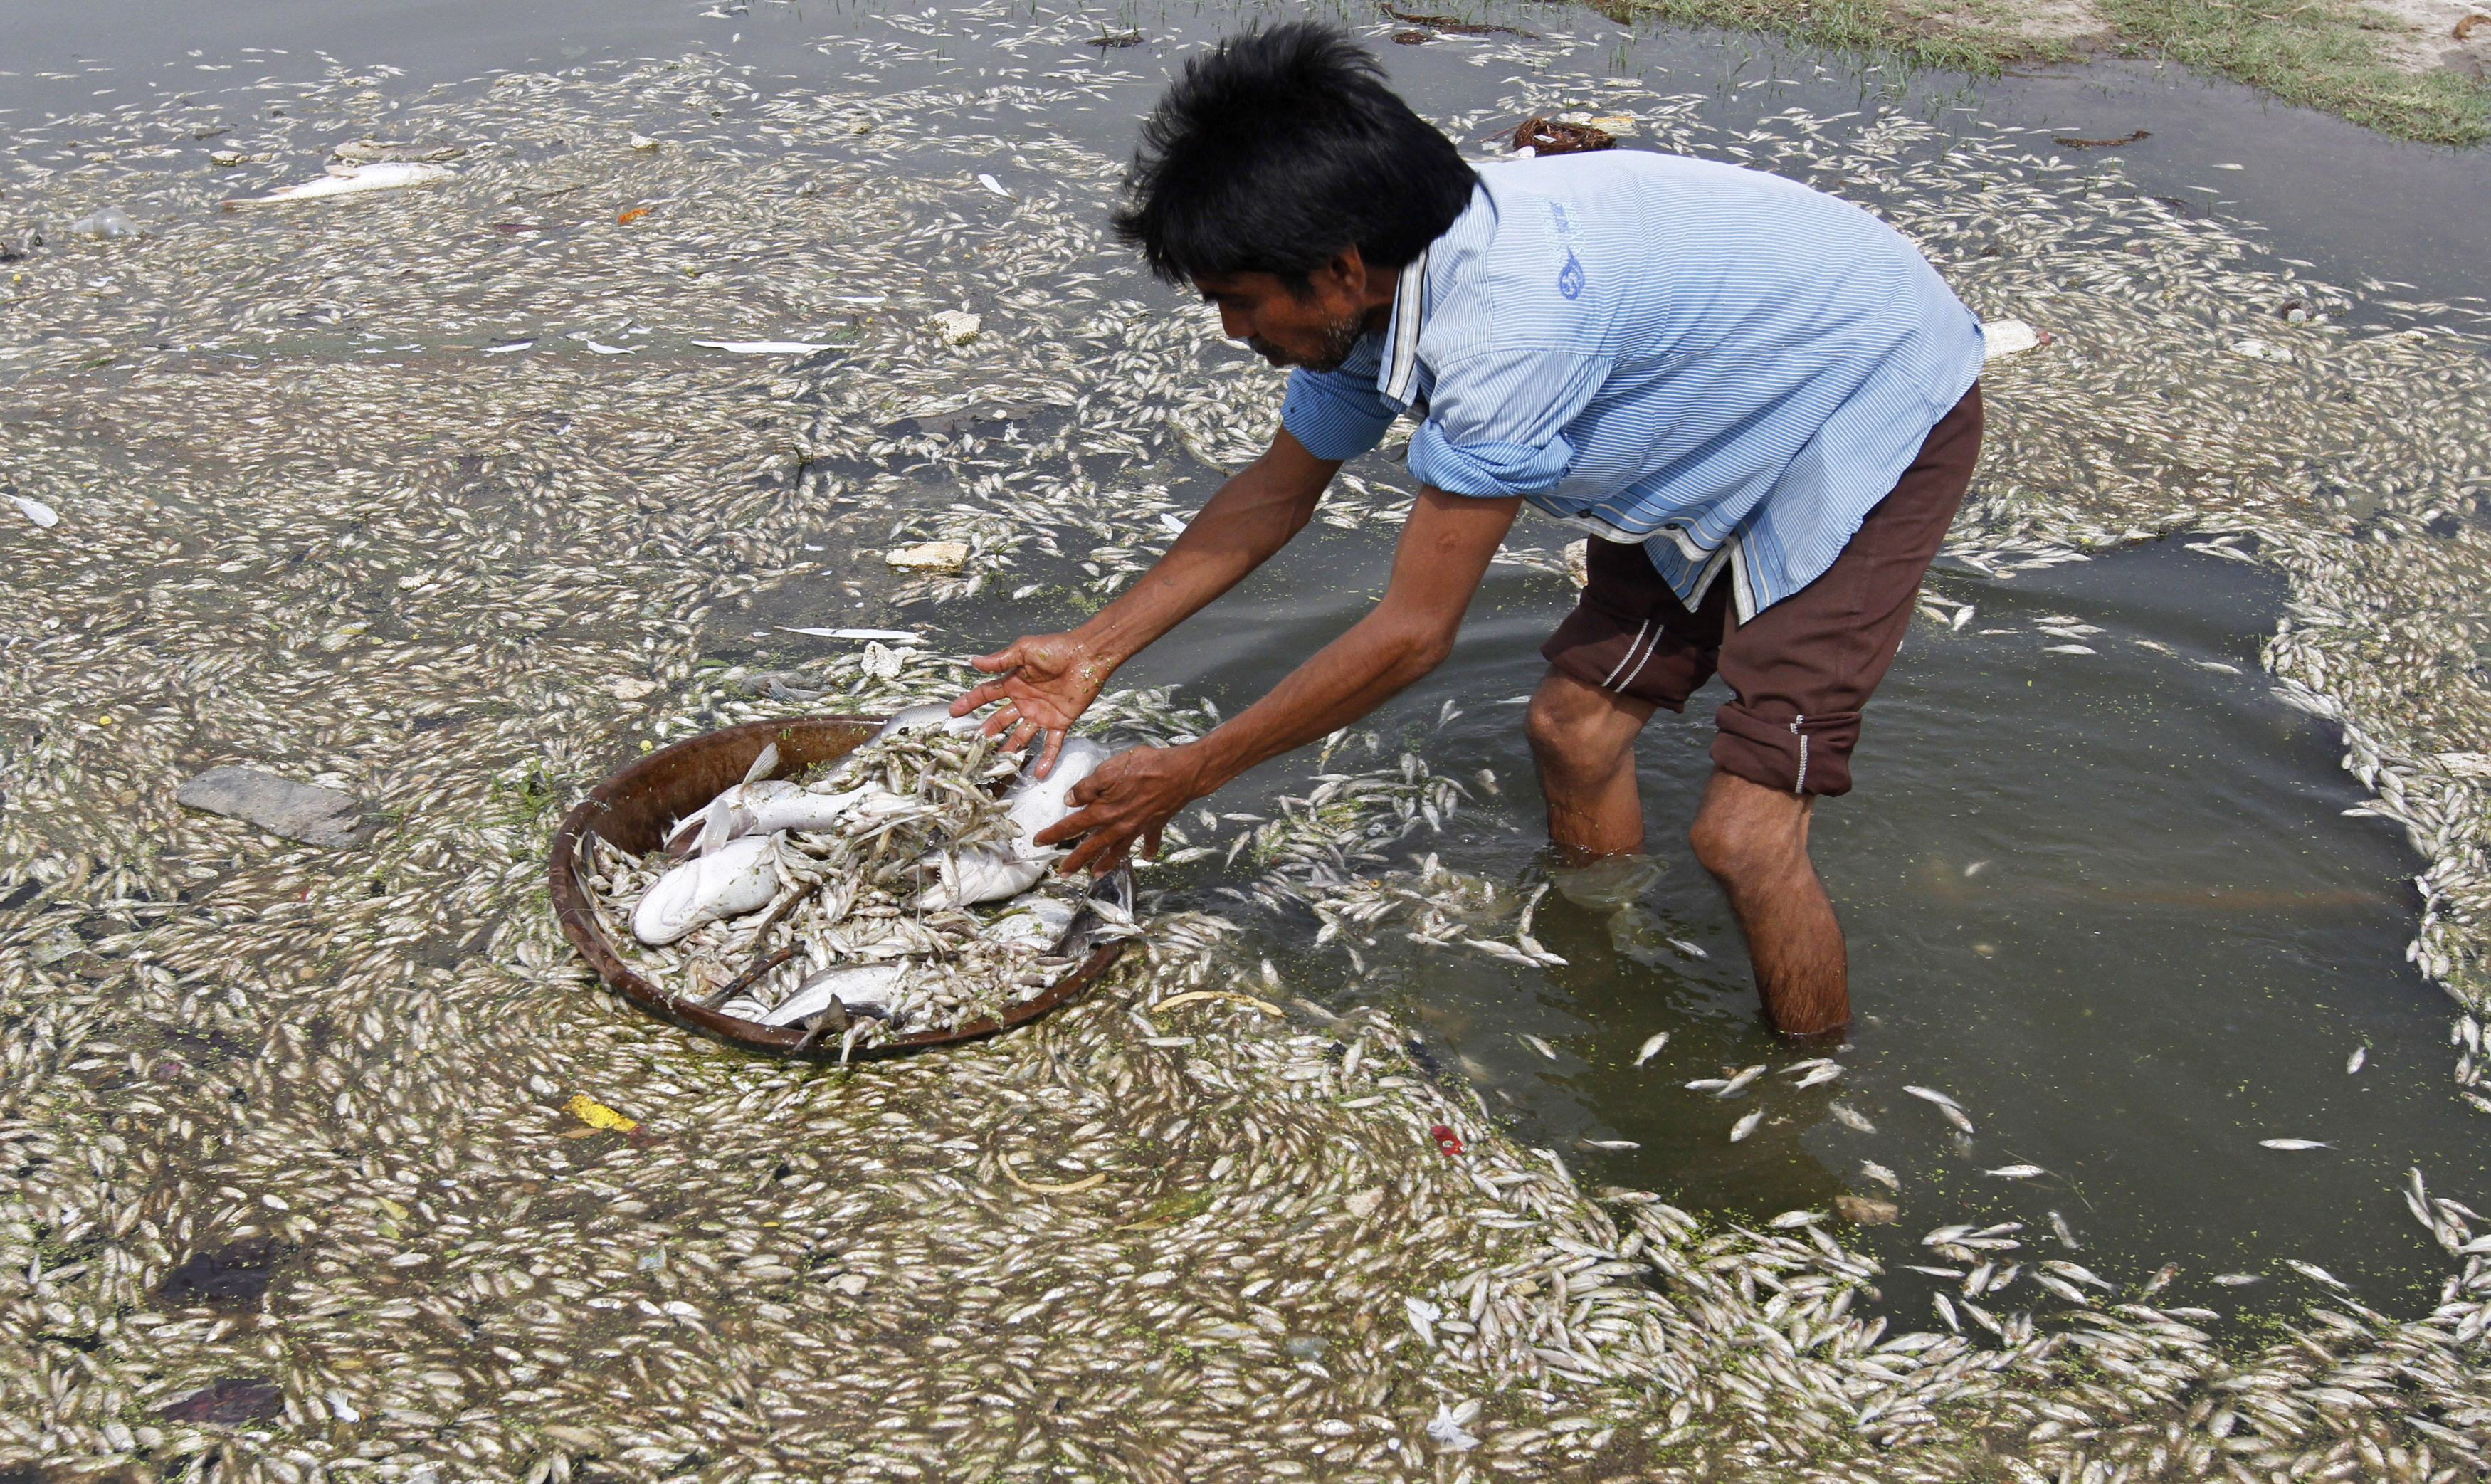 A villager fills a bucket with dead fish from the polluted waters of a lake at Matado village, about 35 km (22 miles) west from the western Indian city of Ahmedabad August 11, 2012. Thousands of dead fish were found floating on the lake on Saturday due to depletion of oxygen and polluted waters coming in from the near-by factories, village head said. REUTERS/Amit Dave (INDIA - Tags: ENVIRONMENT SOCIETY) - RTR36O85